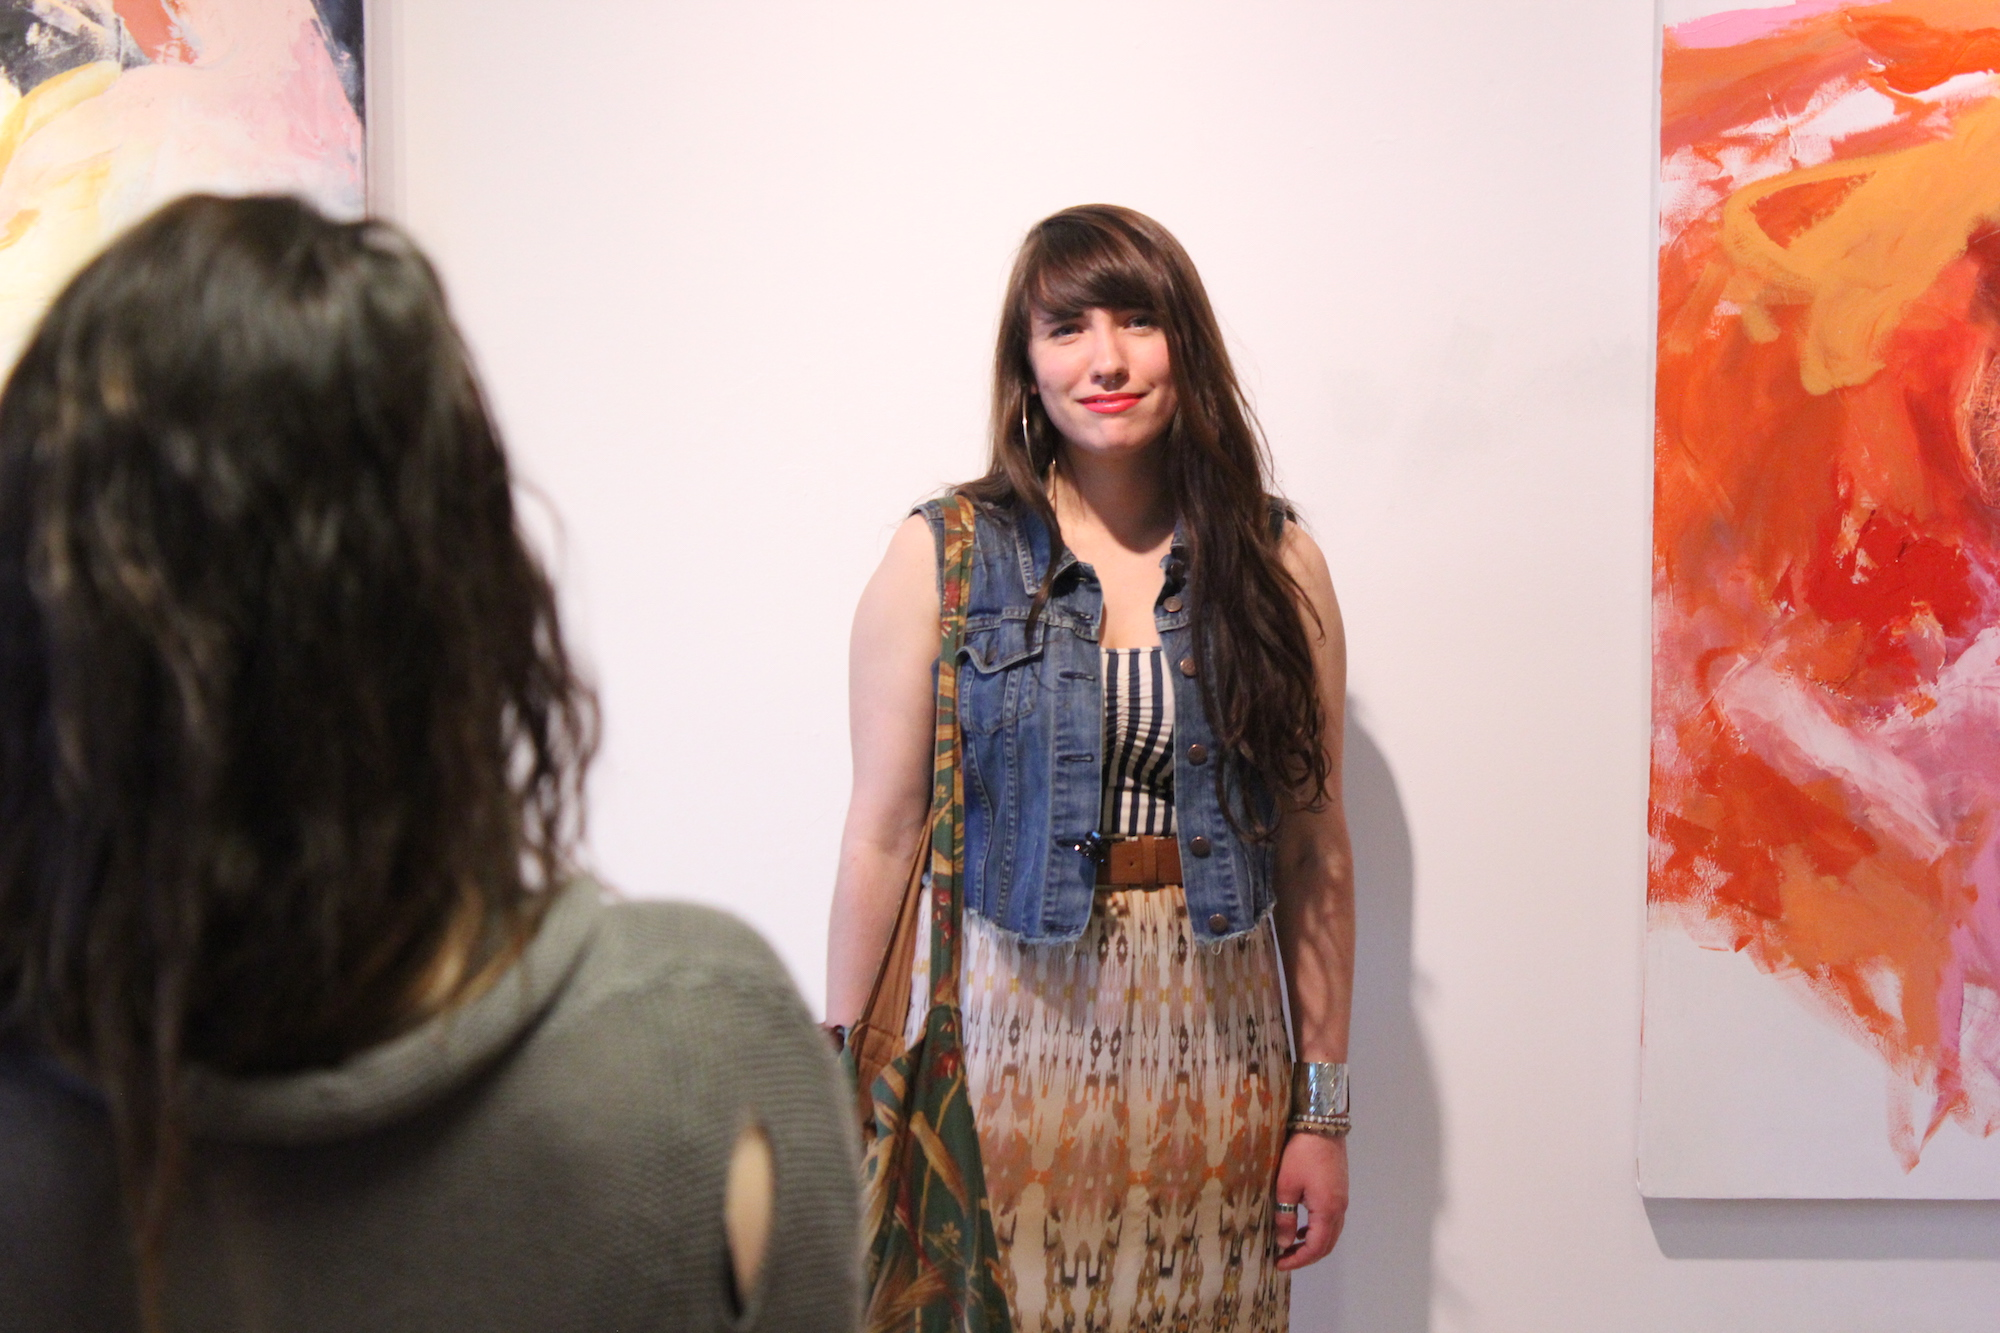 Carly Sheehan stands beside her paintings at Geena Matuson's (@geenamatuson) TransFIREmation Gallery Show & Installation in the MassArt Student Life Gallery, 2013.